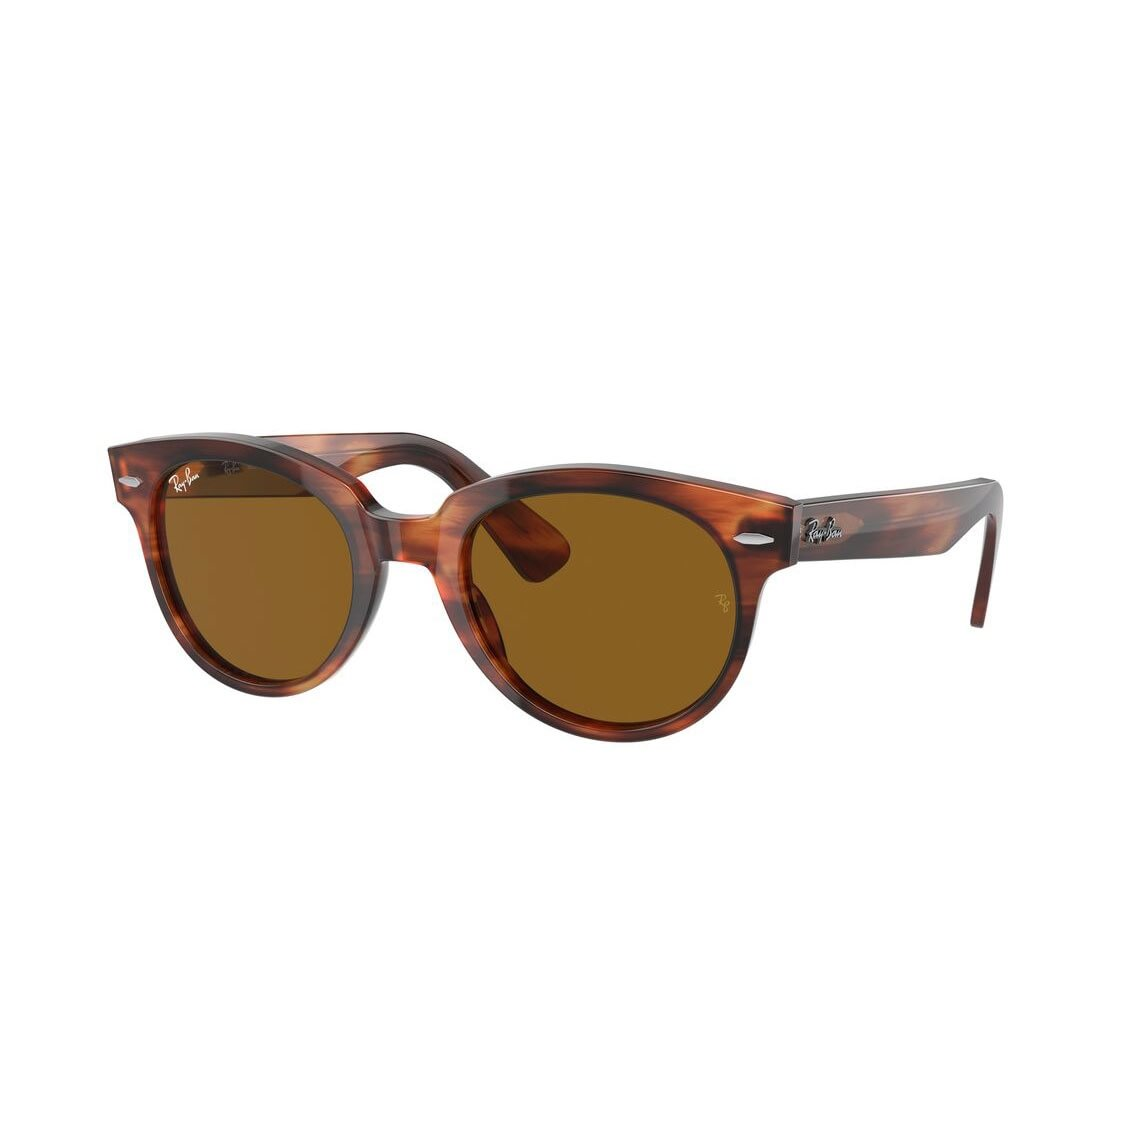 Ray-Ban Orion RB2199 954/33 5222